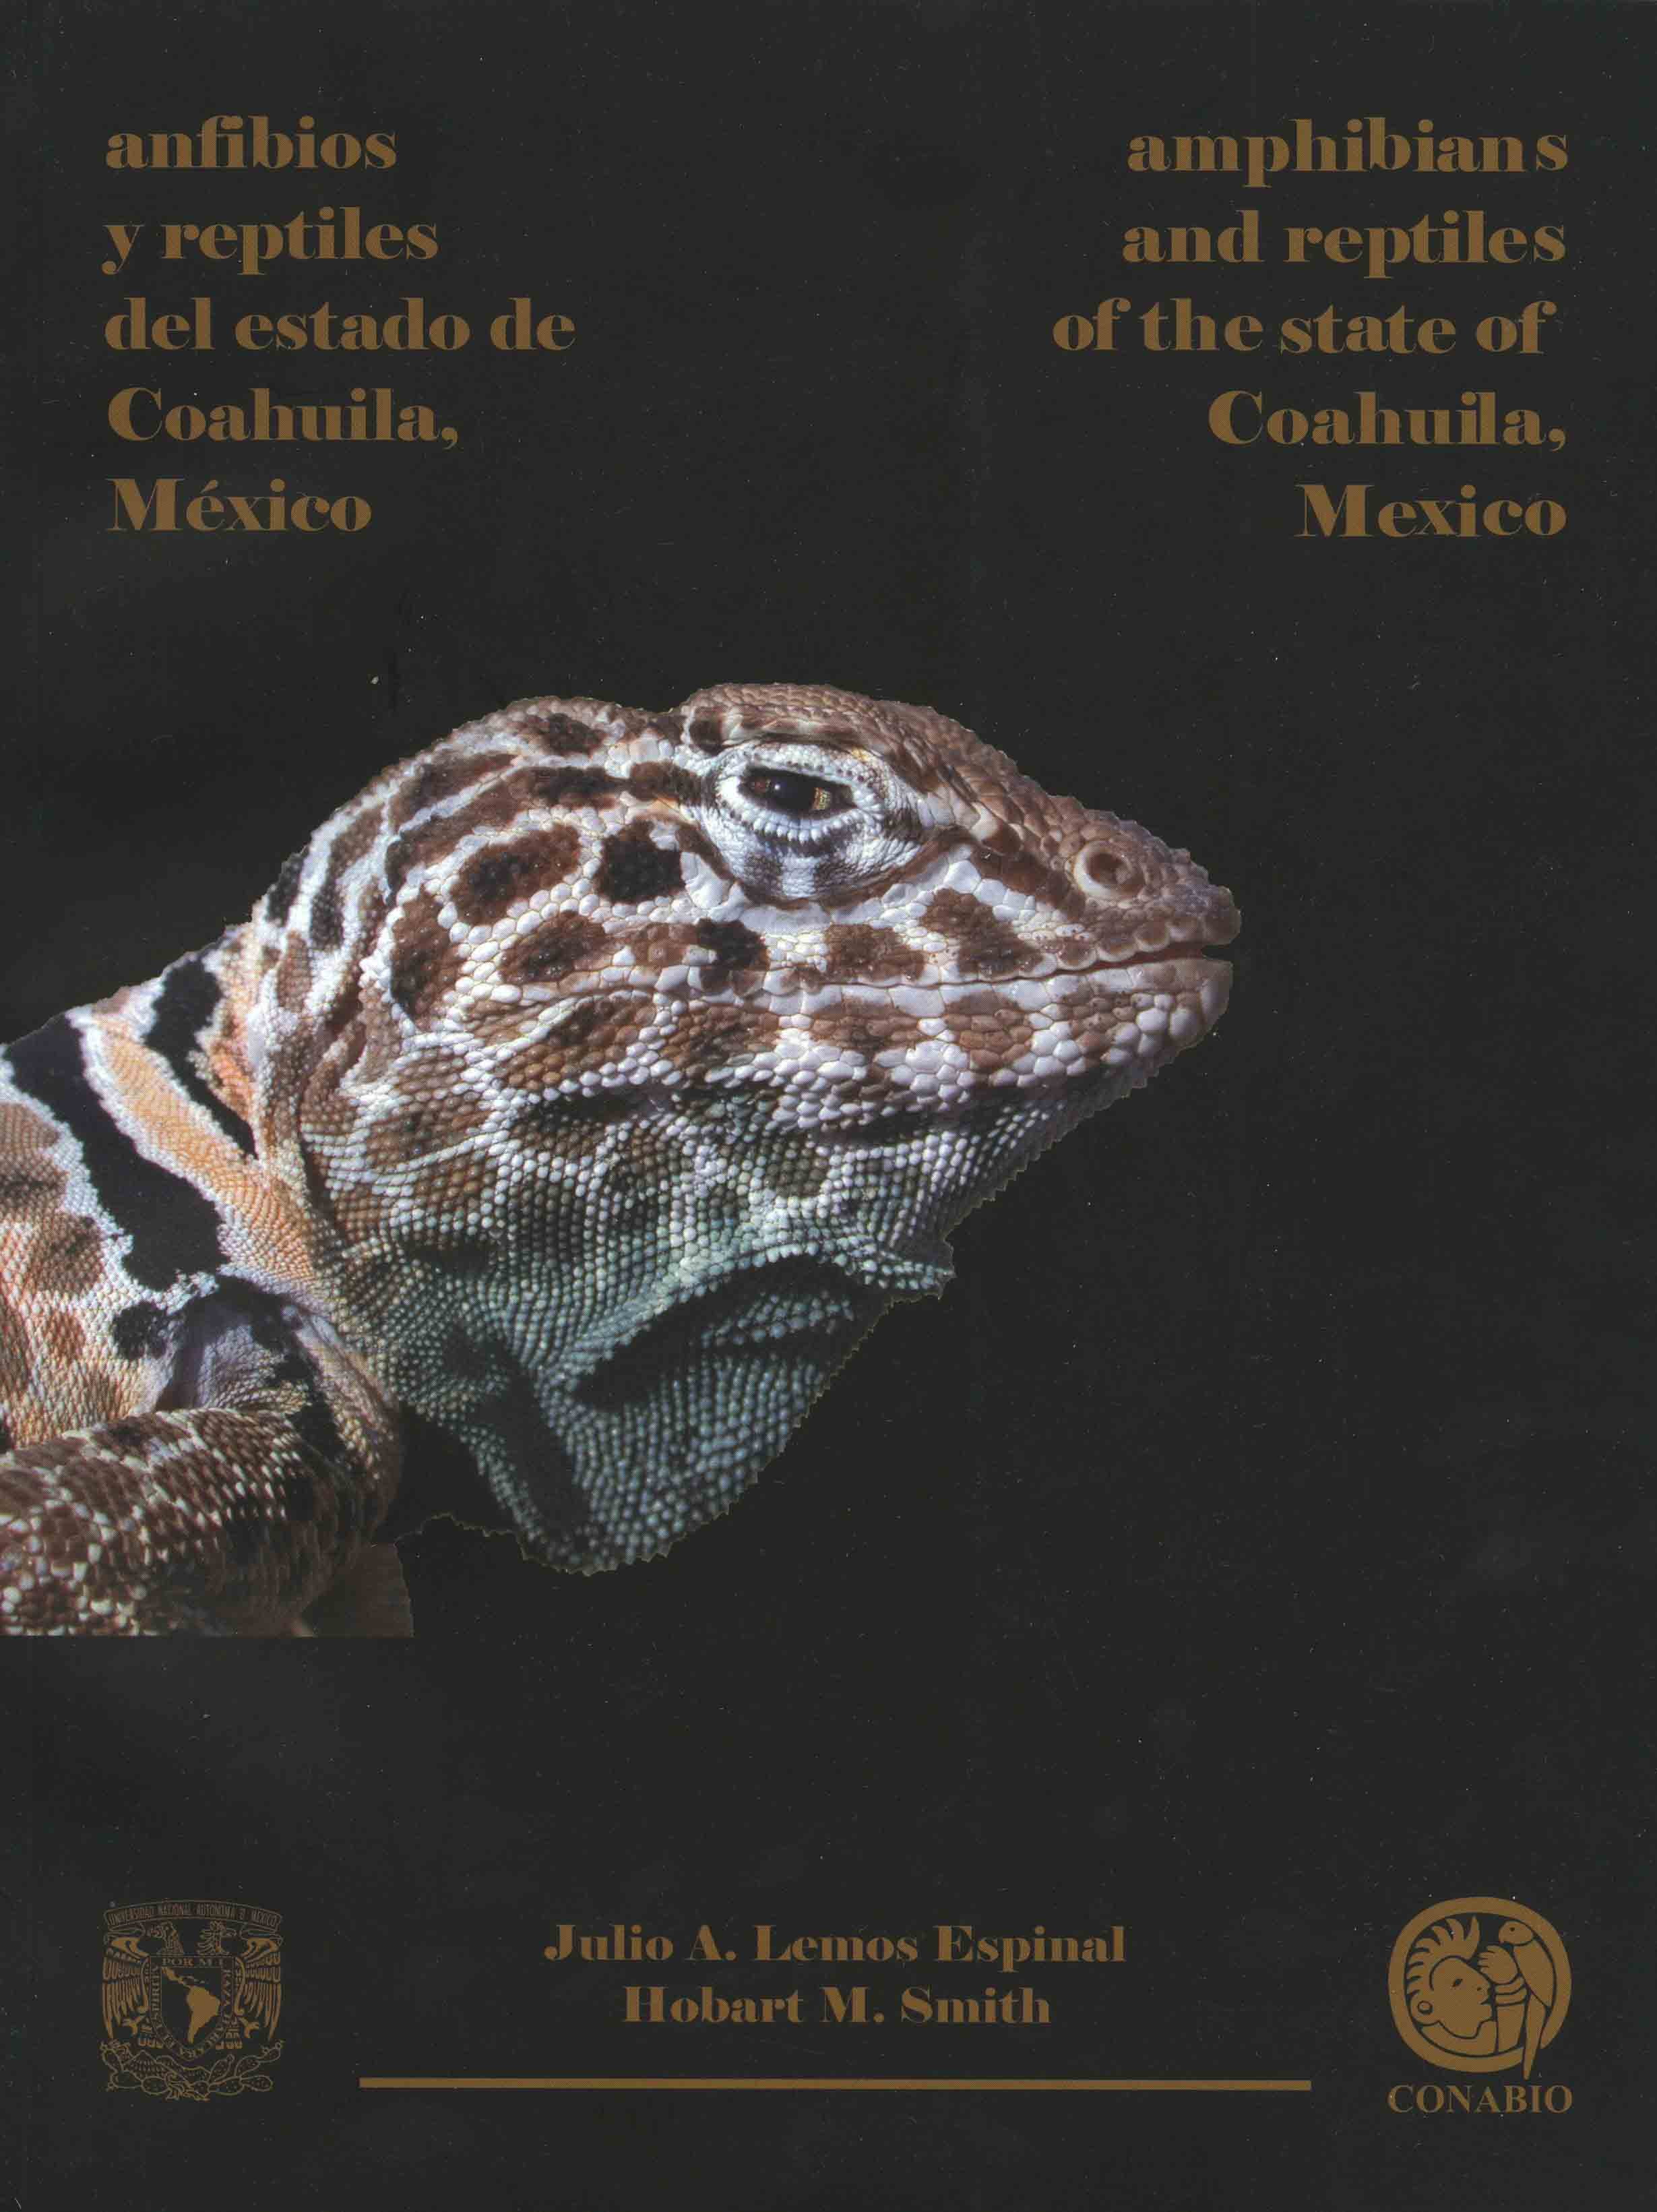 Image for Anfibios y Reptiles del Estado de Coahuila, México / Amphibians and Reptiles of the State of Coahuila, Mexico